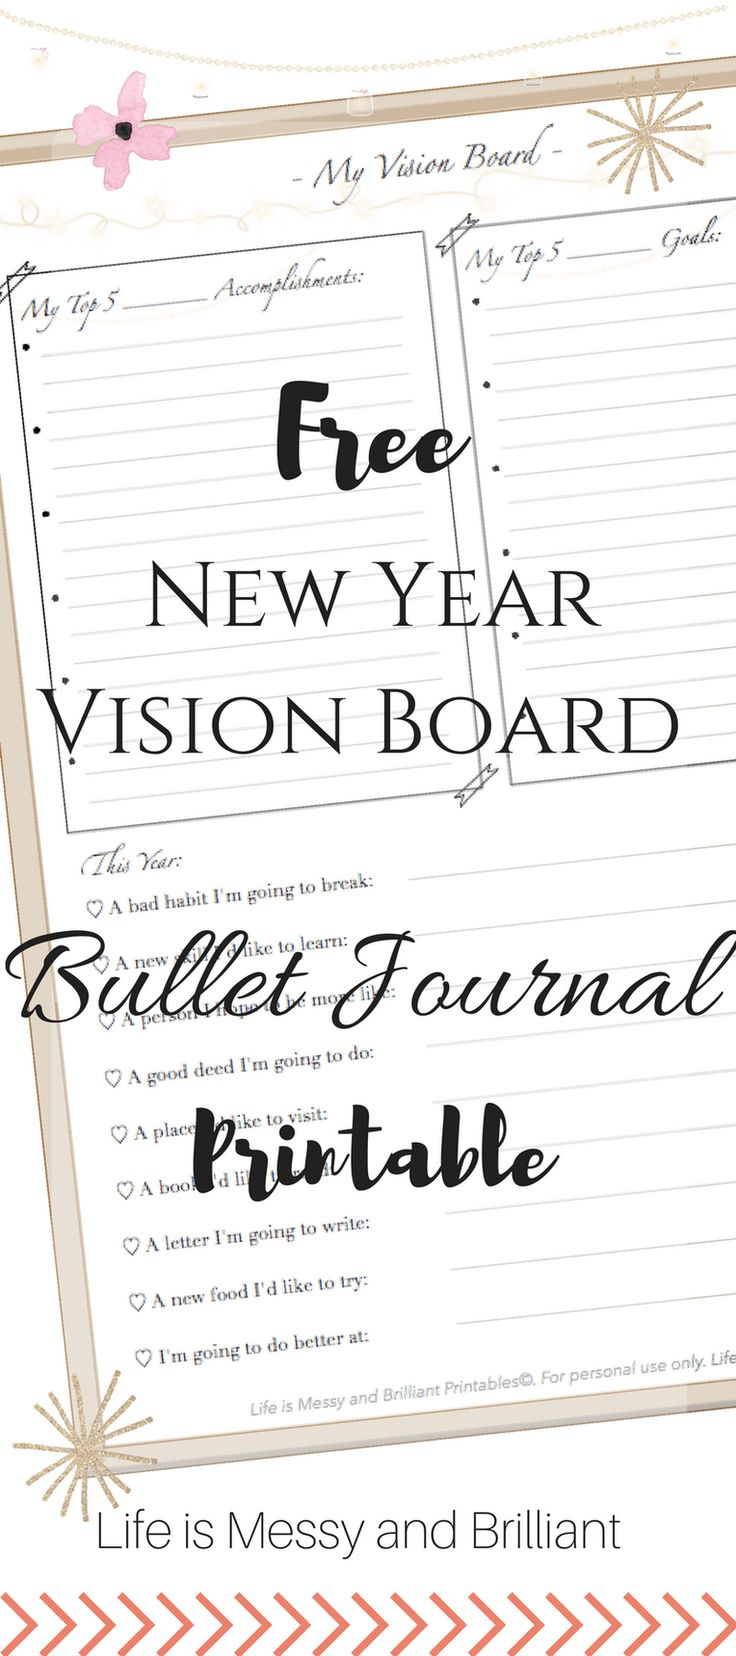 The dress journal of vision - Free New Year Vision Board Bullet Journal Printable